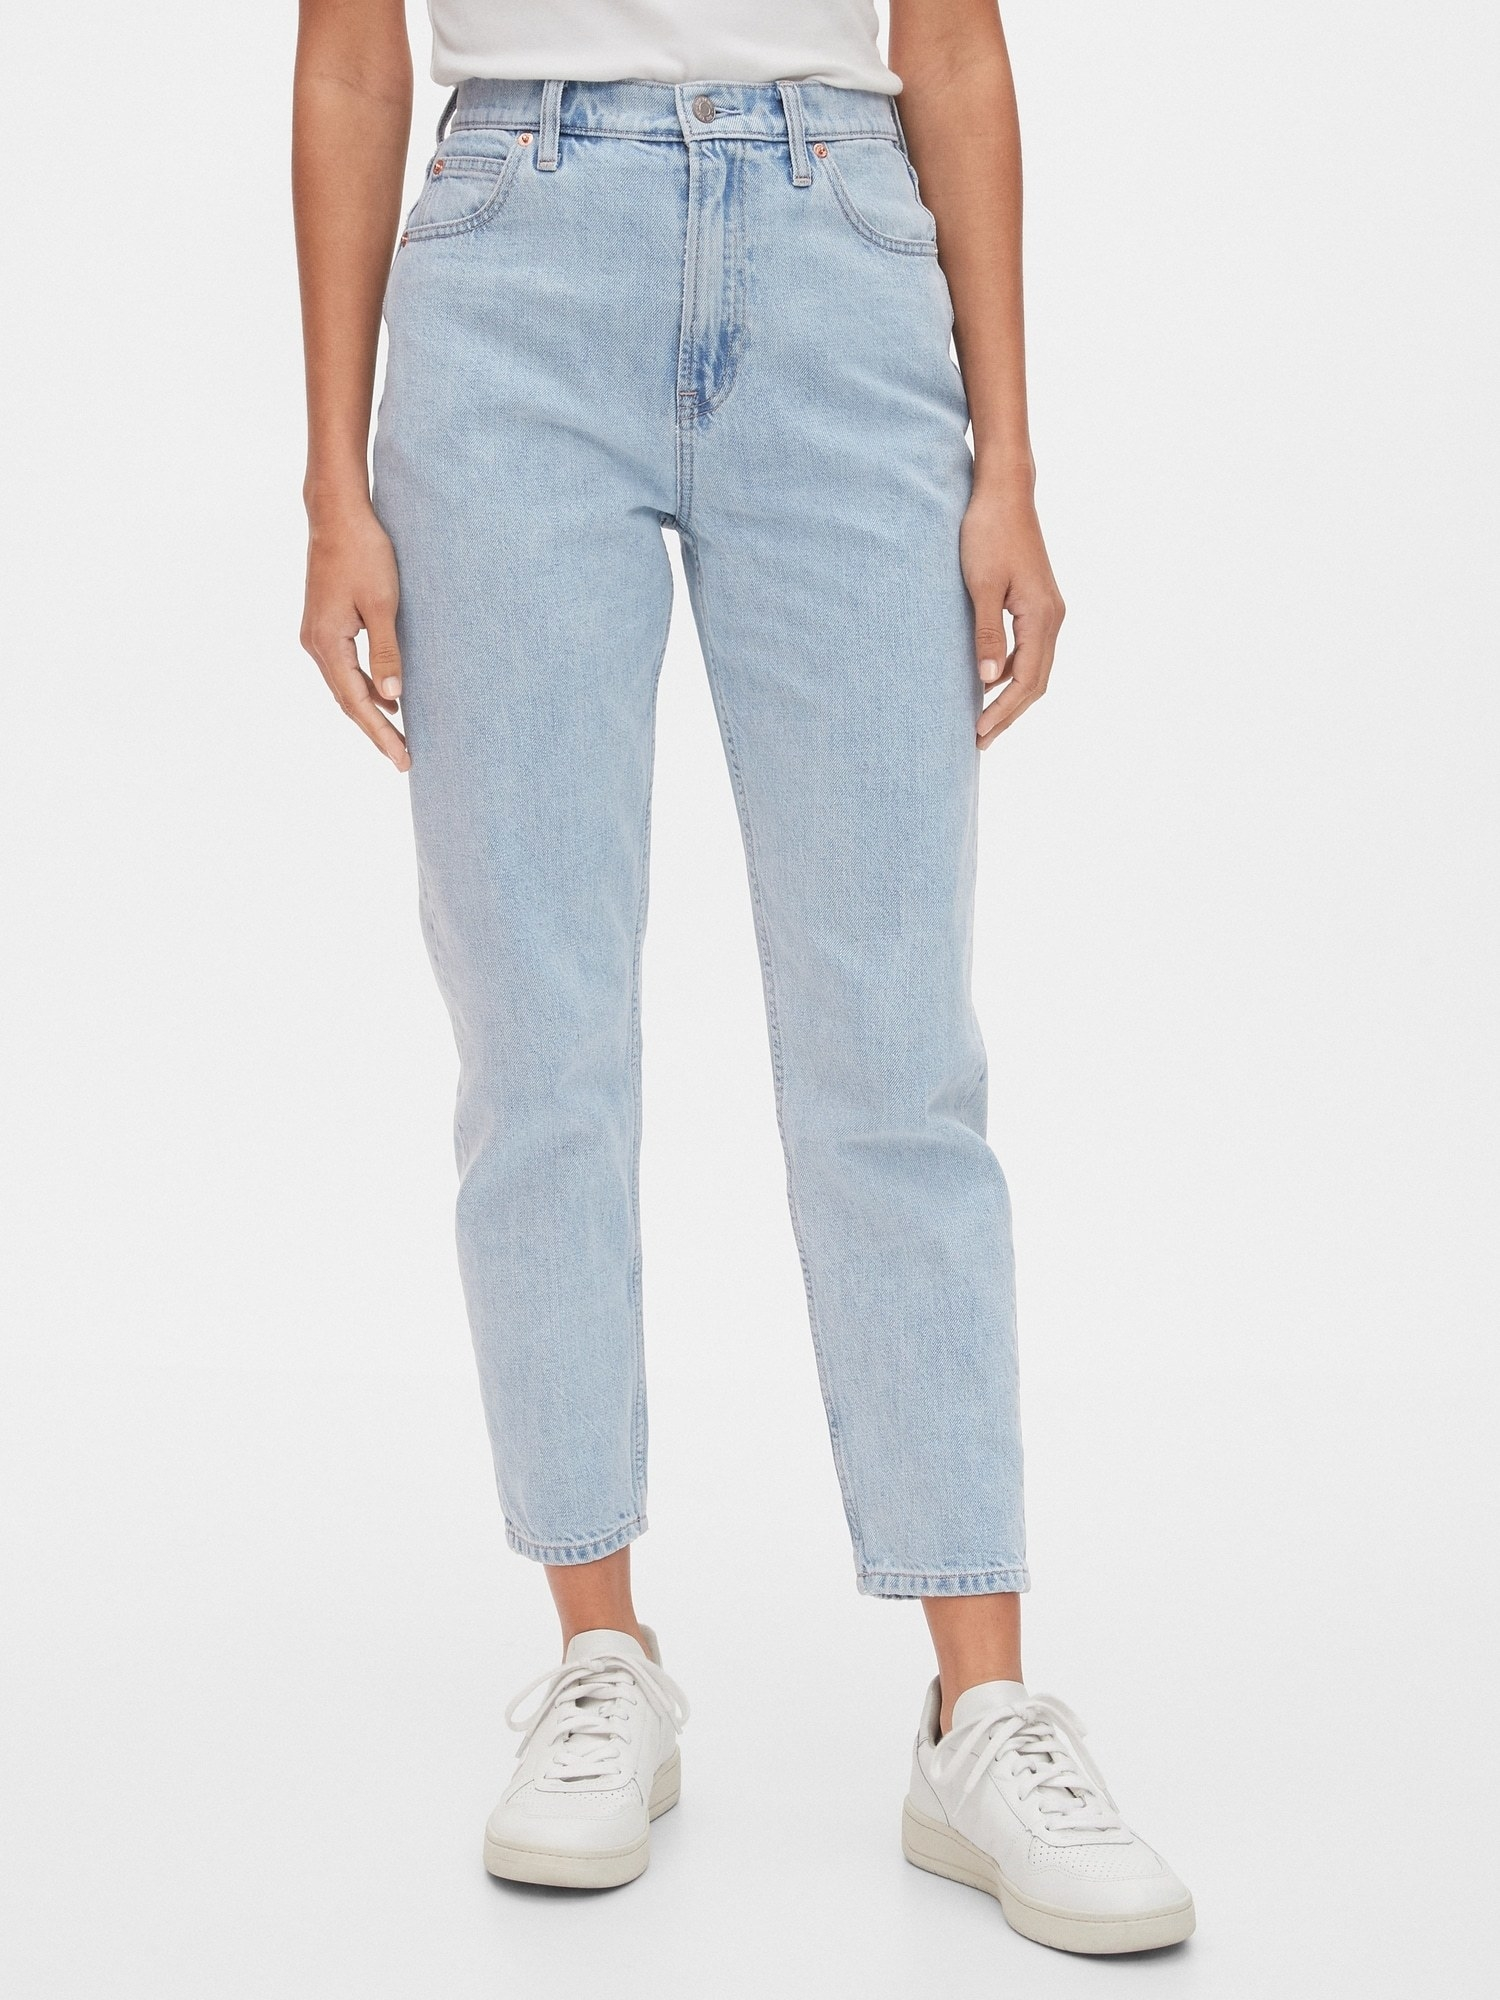 The high rise straight-leg jeans in a light wash